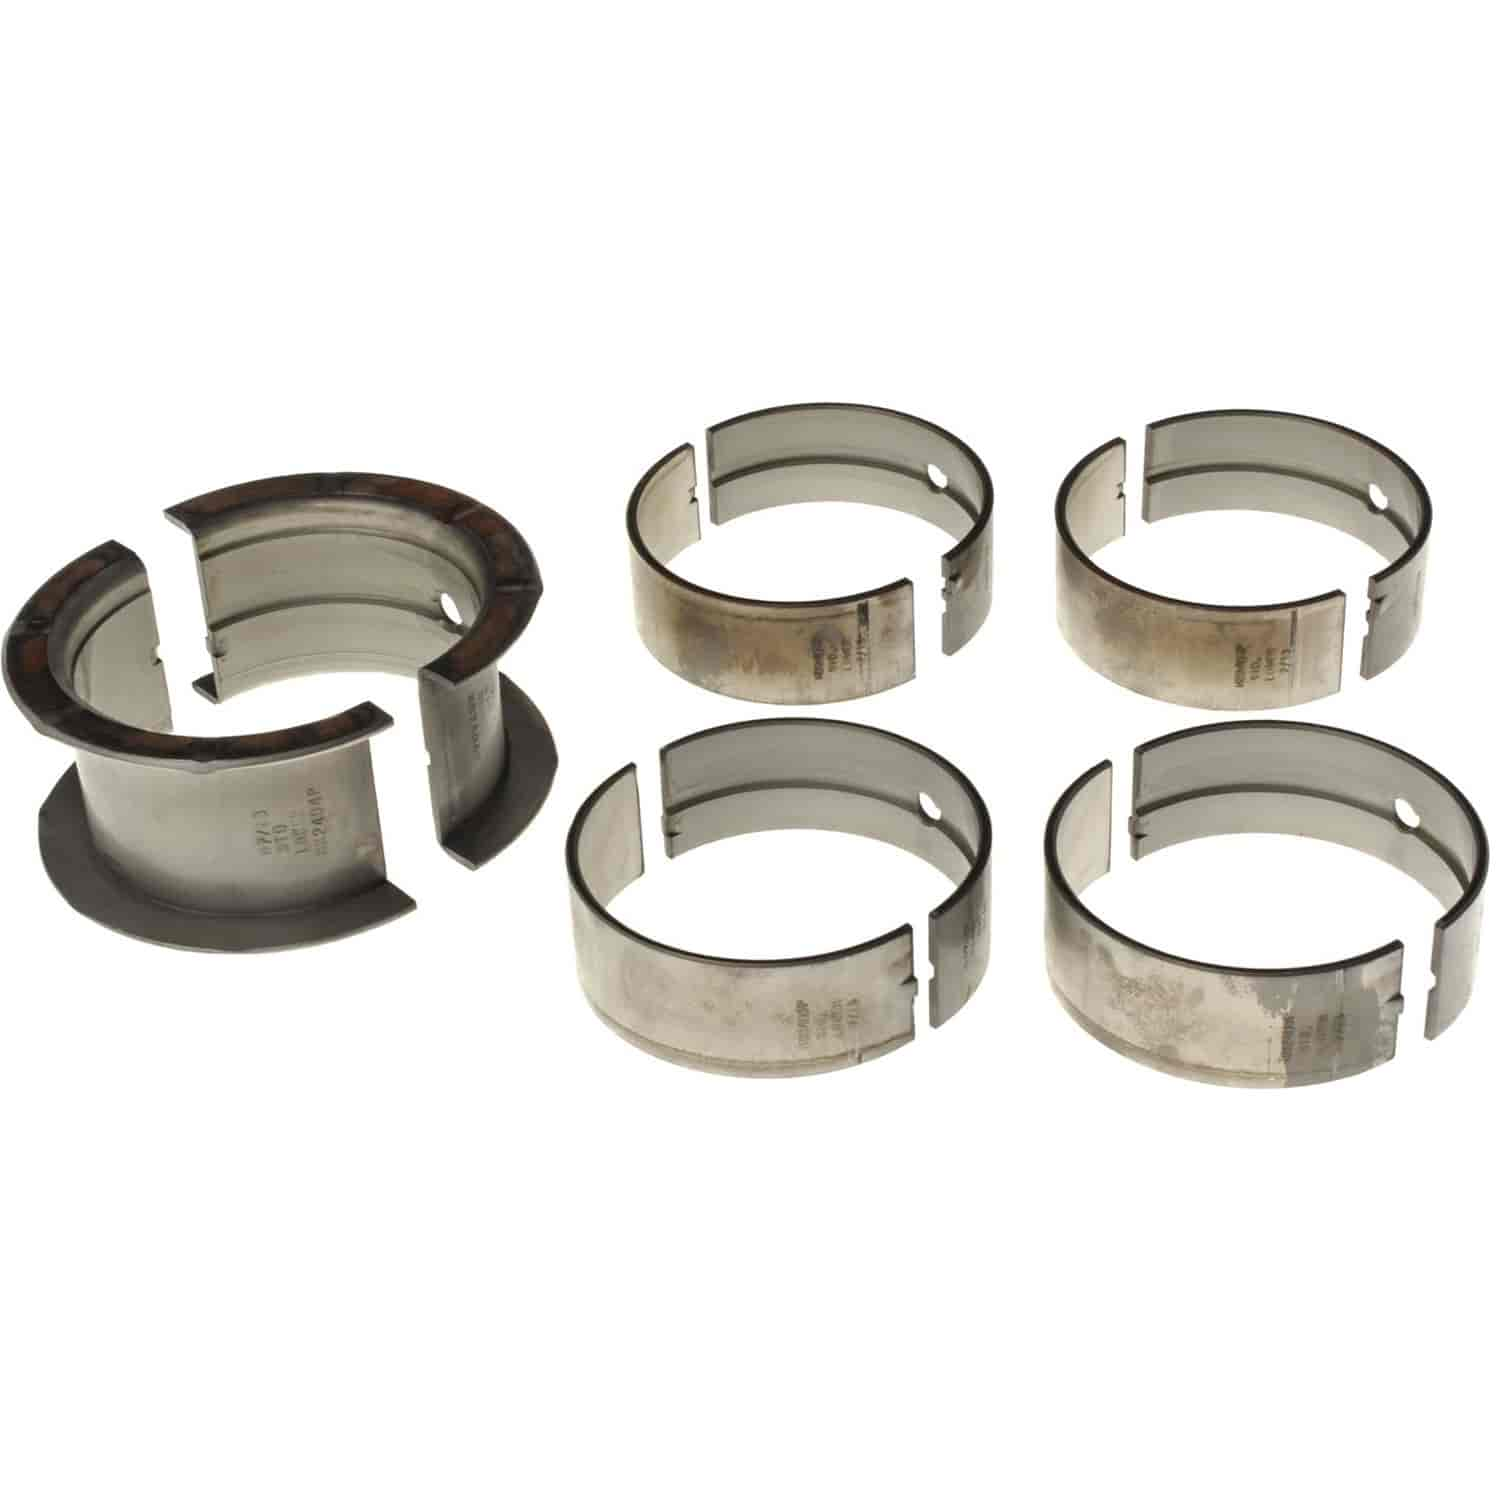 Clevite MS829P30 - Clevite 77 High-Performance Bearings